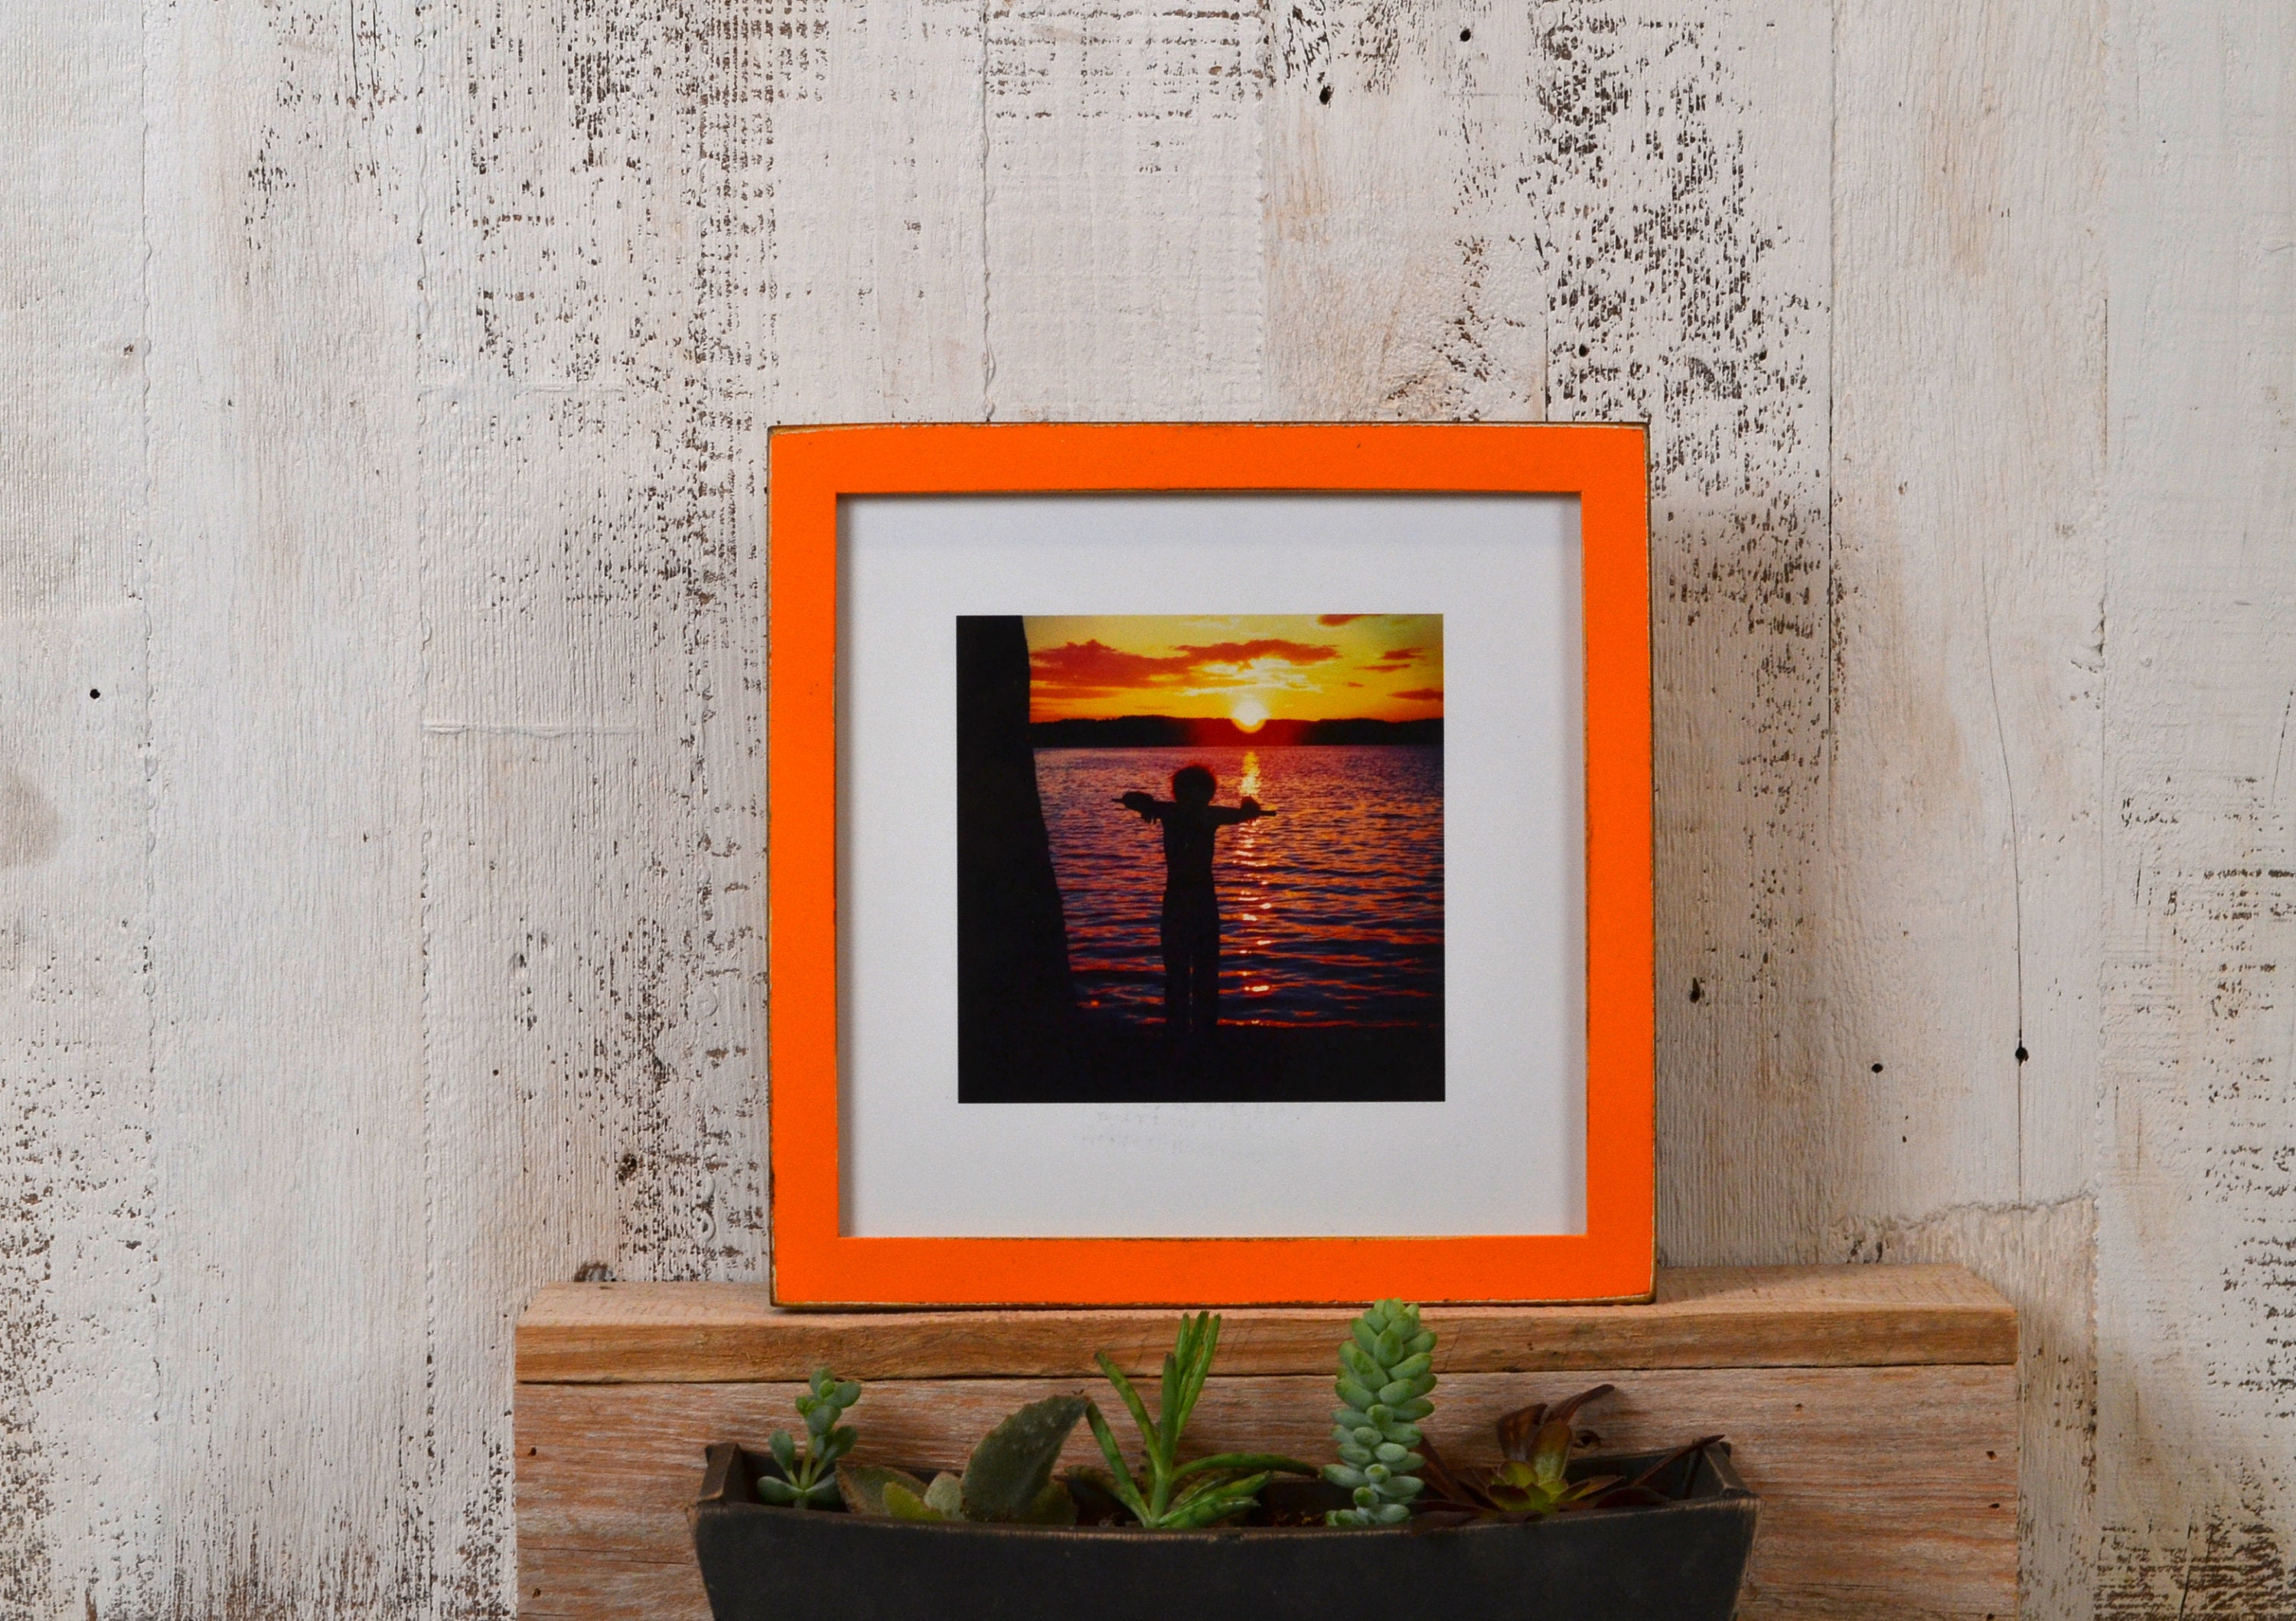 8x8 Square Picture Frame with Vintage Orange Finish in Peewee Style ...